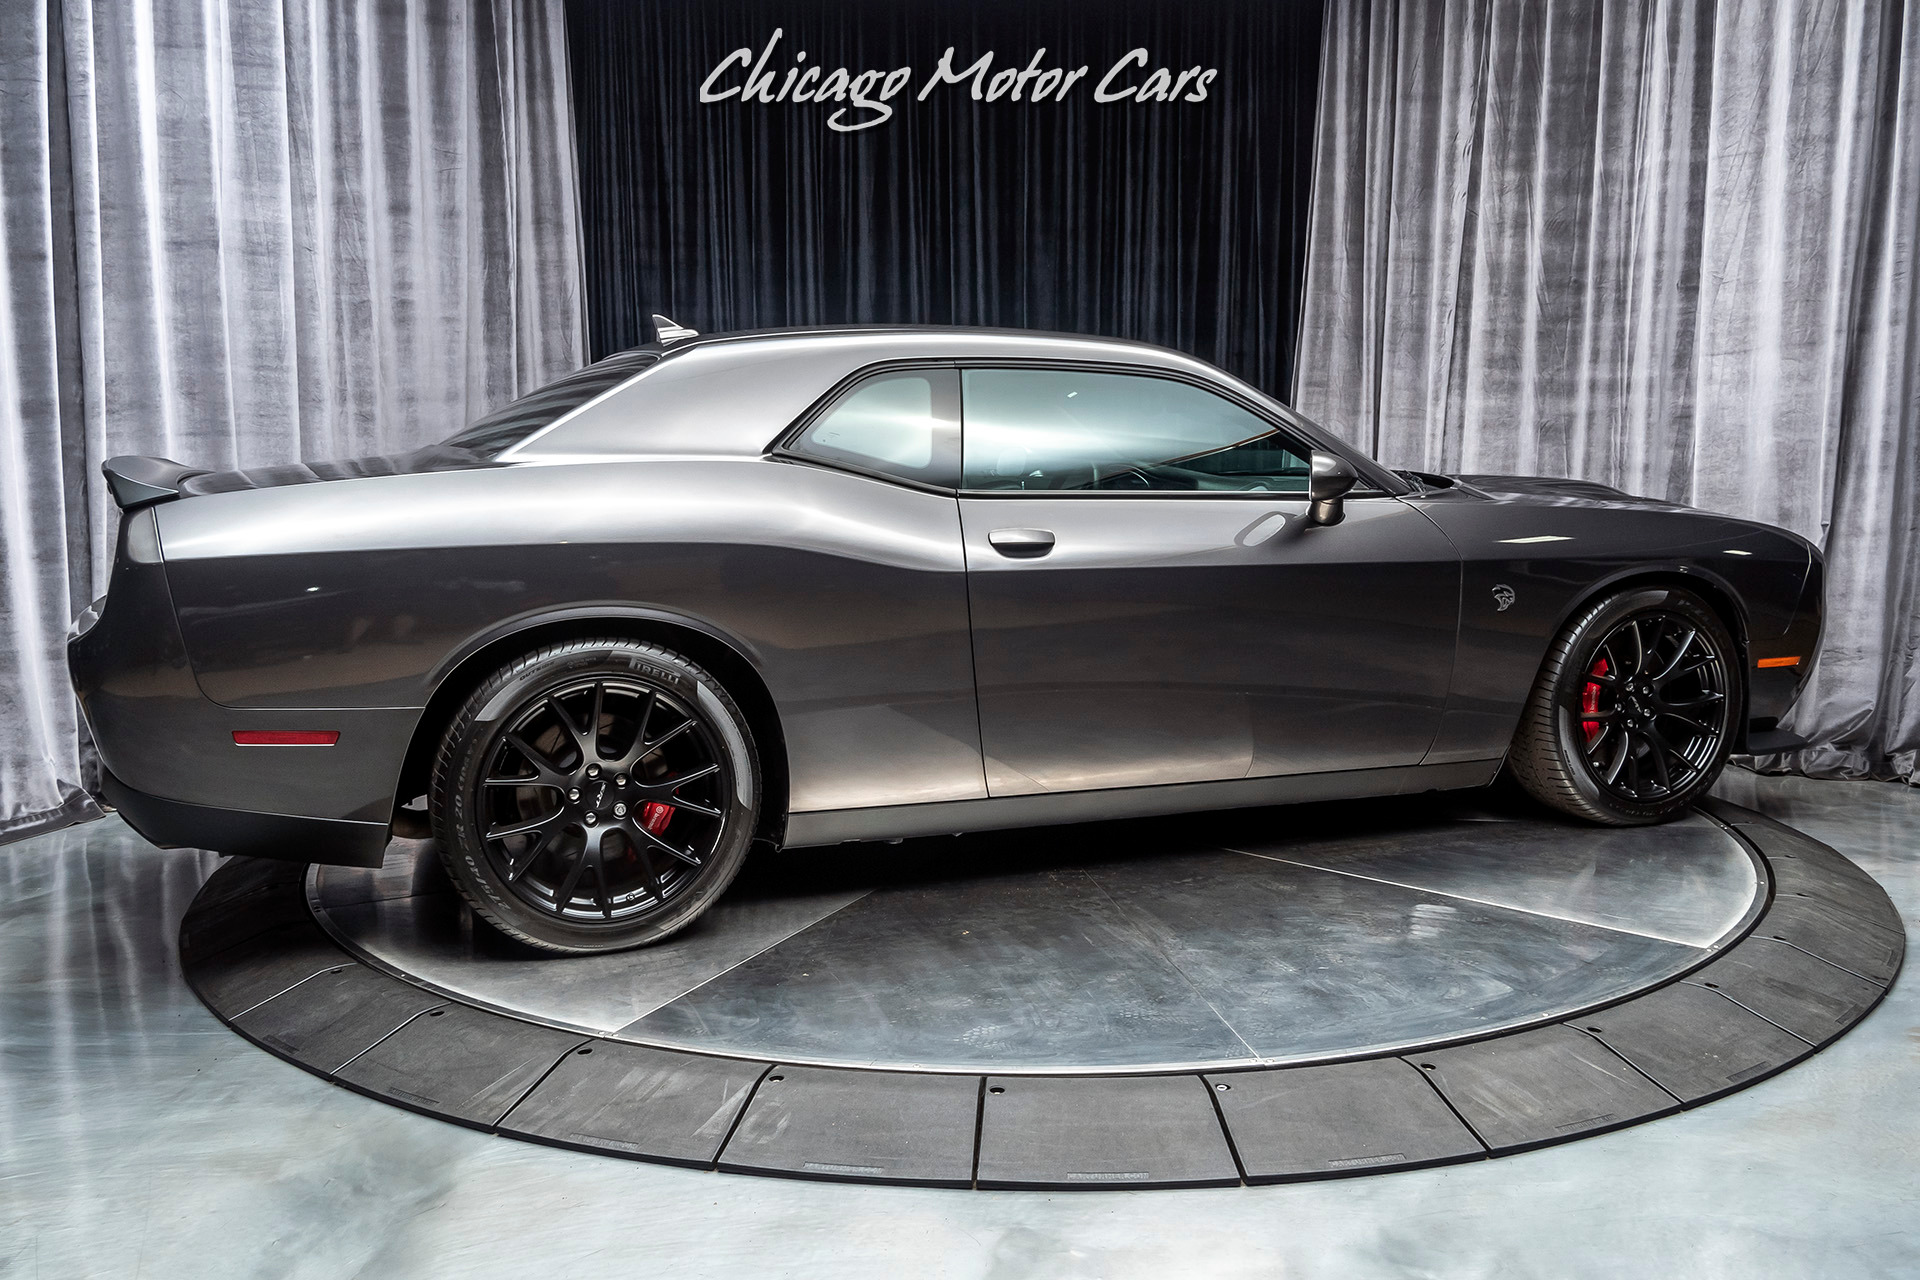 Used-2016-Dodge-Challenger-SRT-Hellcat-Coupe-TORQUE-FLITE-8-SPEED-AUTOMATIC